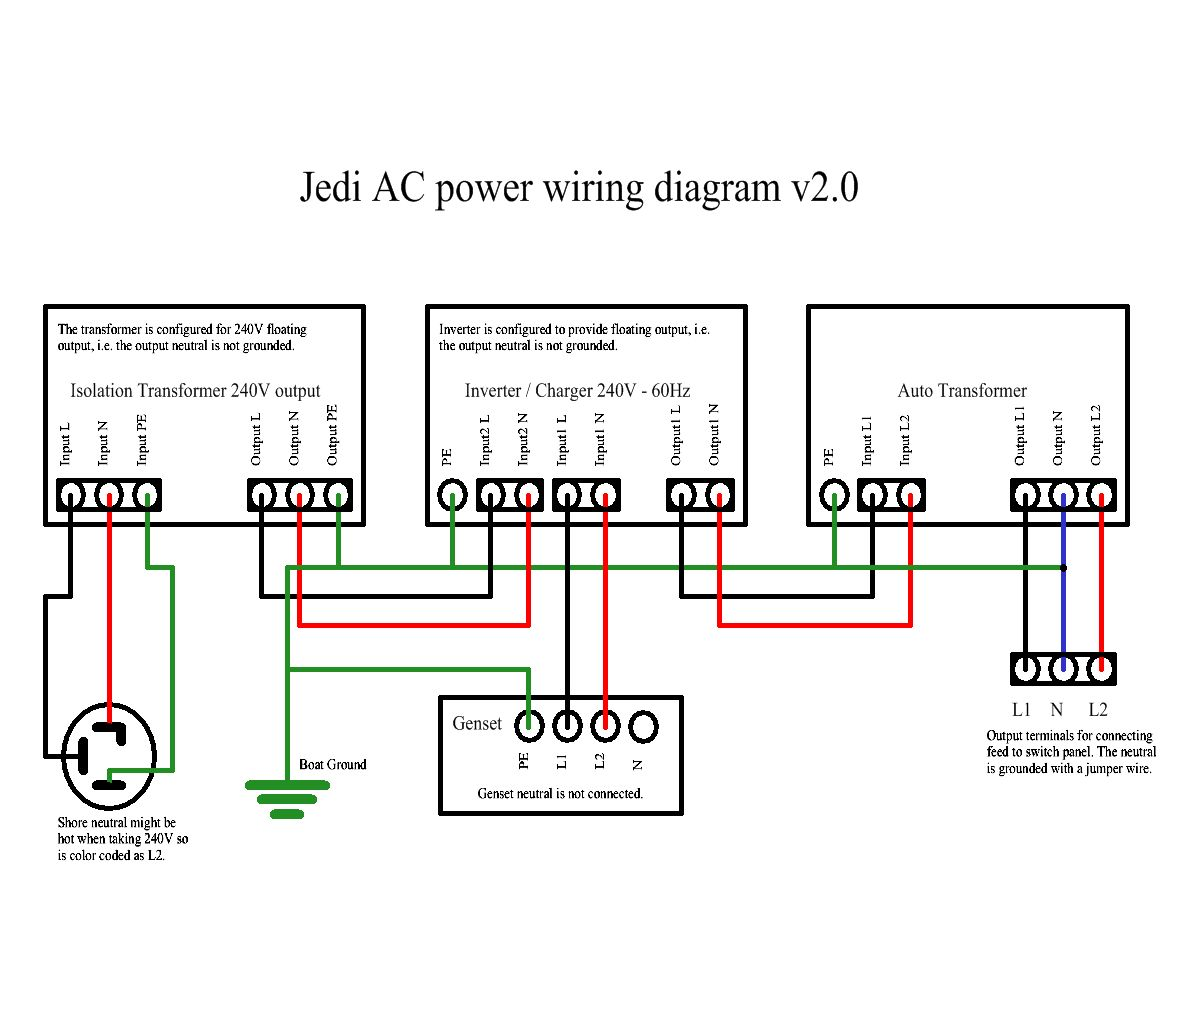 Click image for larger version  Name:AC power wiring diagram no bus bars.jpg Views:11790 Size:117.3 KB ID:9413